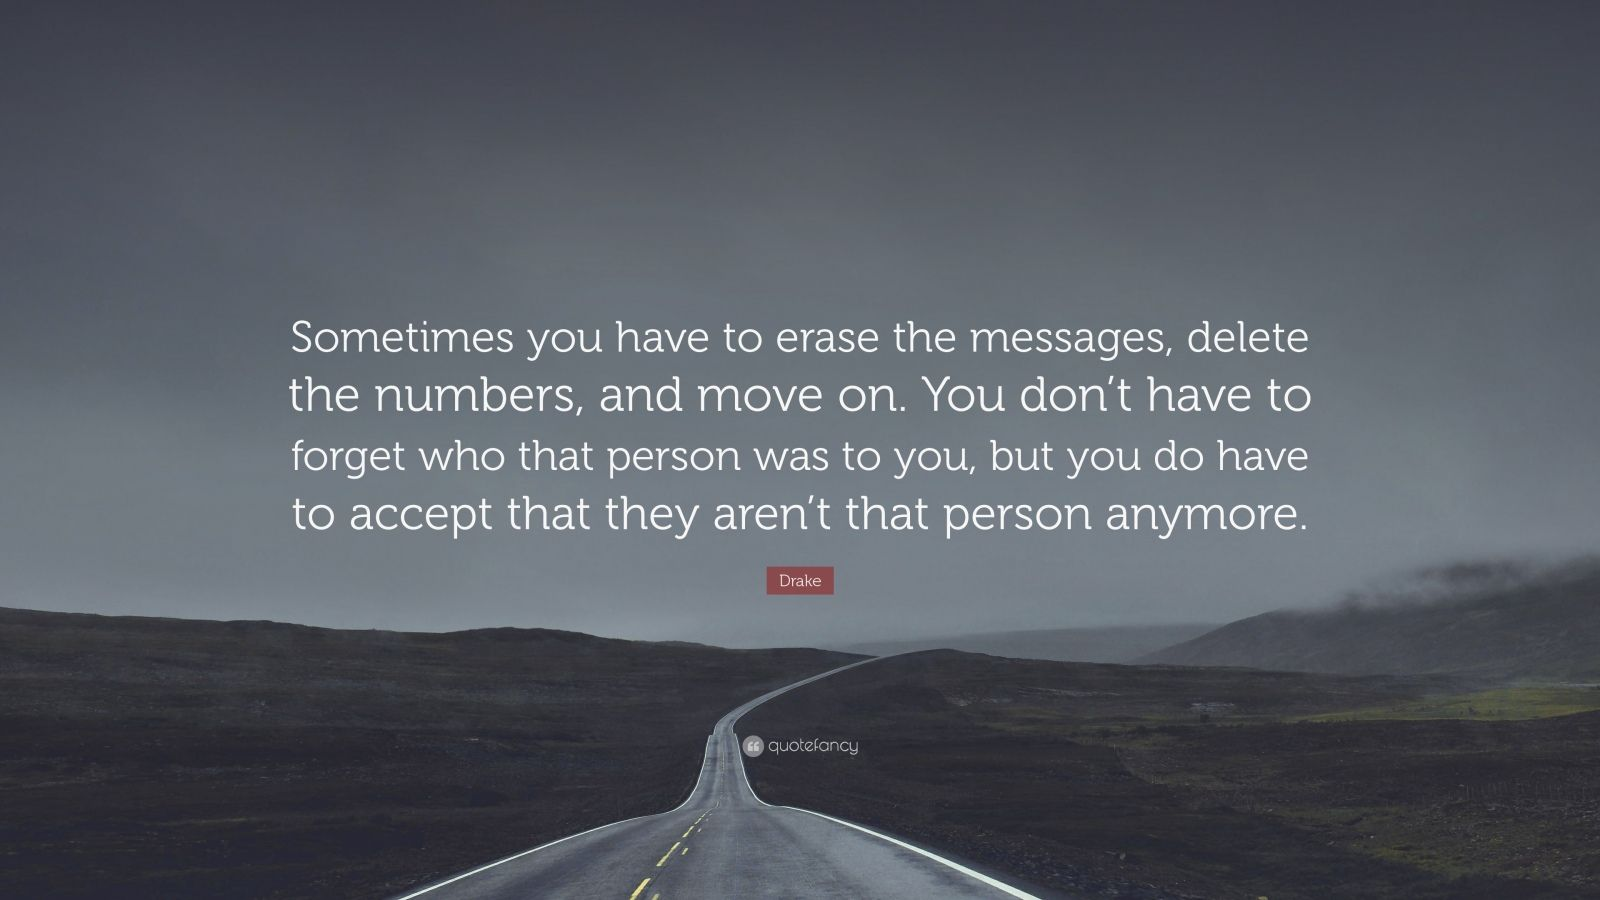 """Drake Quote: """"Sometimes you have to erase the messages, delete the numbers, and move on. You don't have to forget who that person was to you, but you do have to accept that they aren't that person anymore."""""""